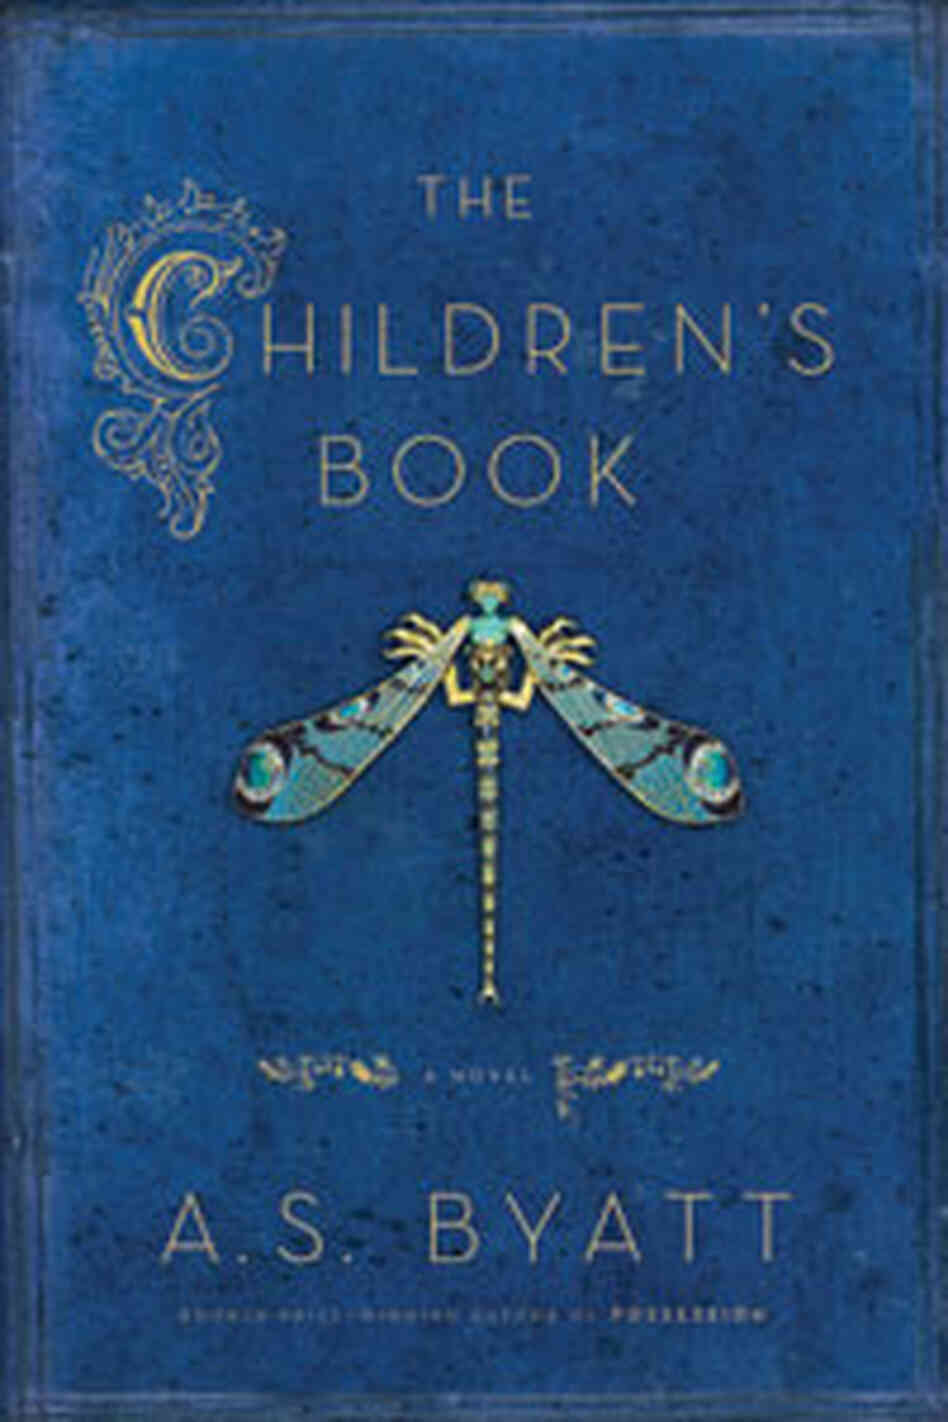 'The Children's Book'